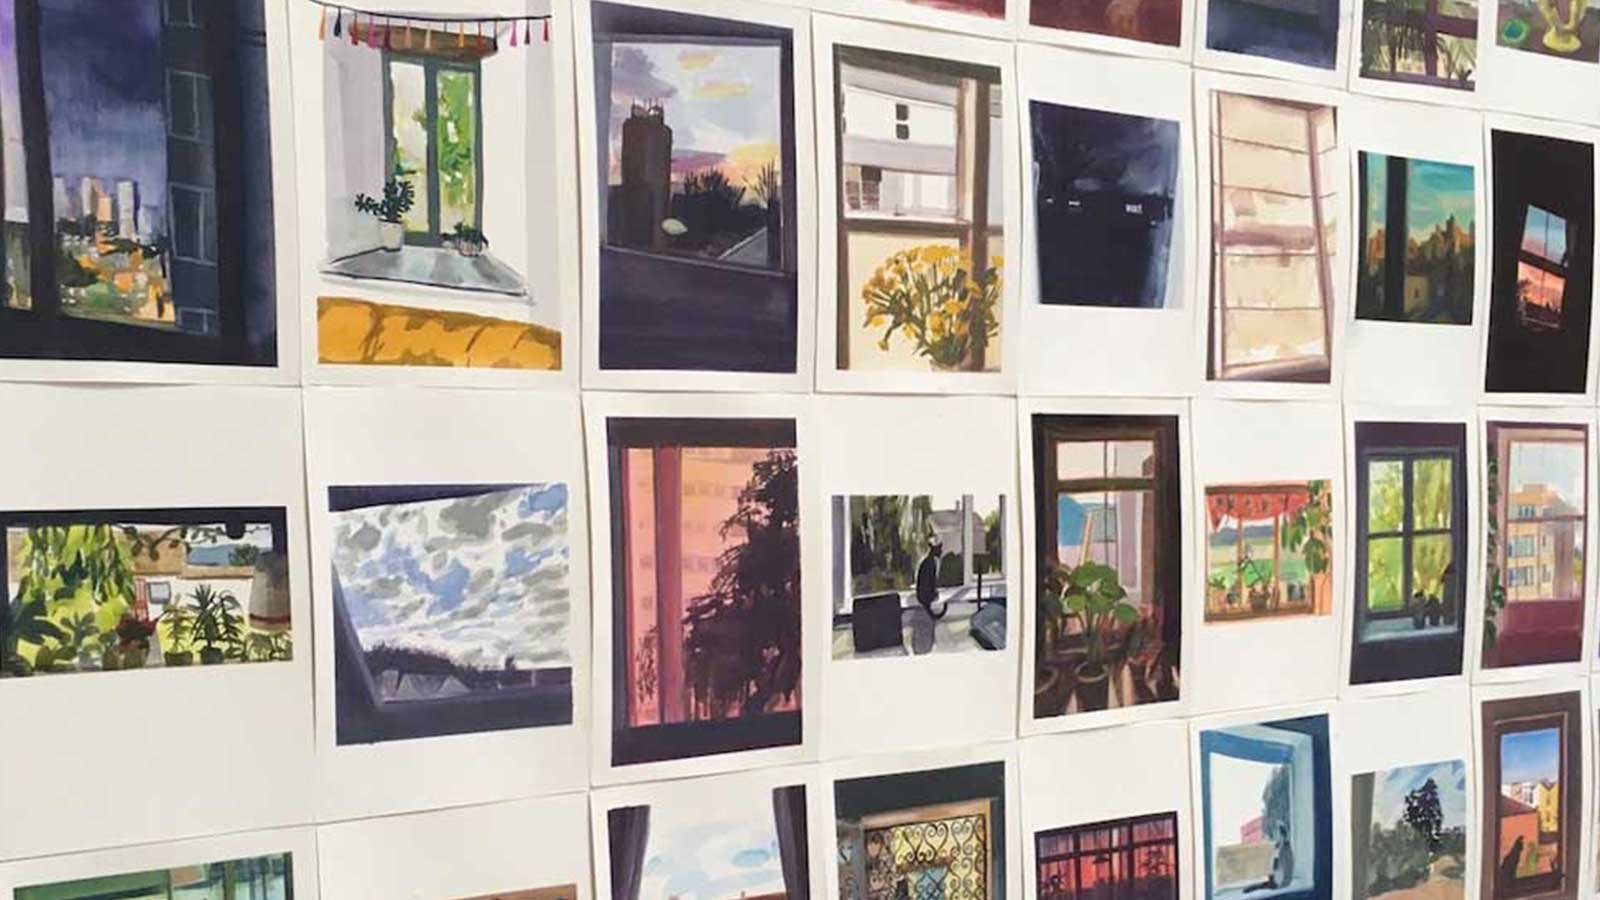 A large selection of illustrations of views from people's windows. The images are laid out on a wall and form a perfect square.